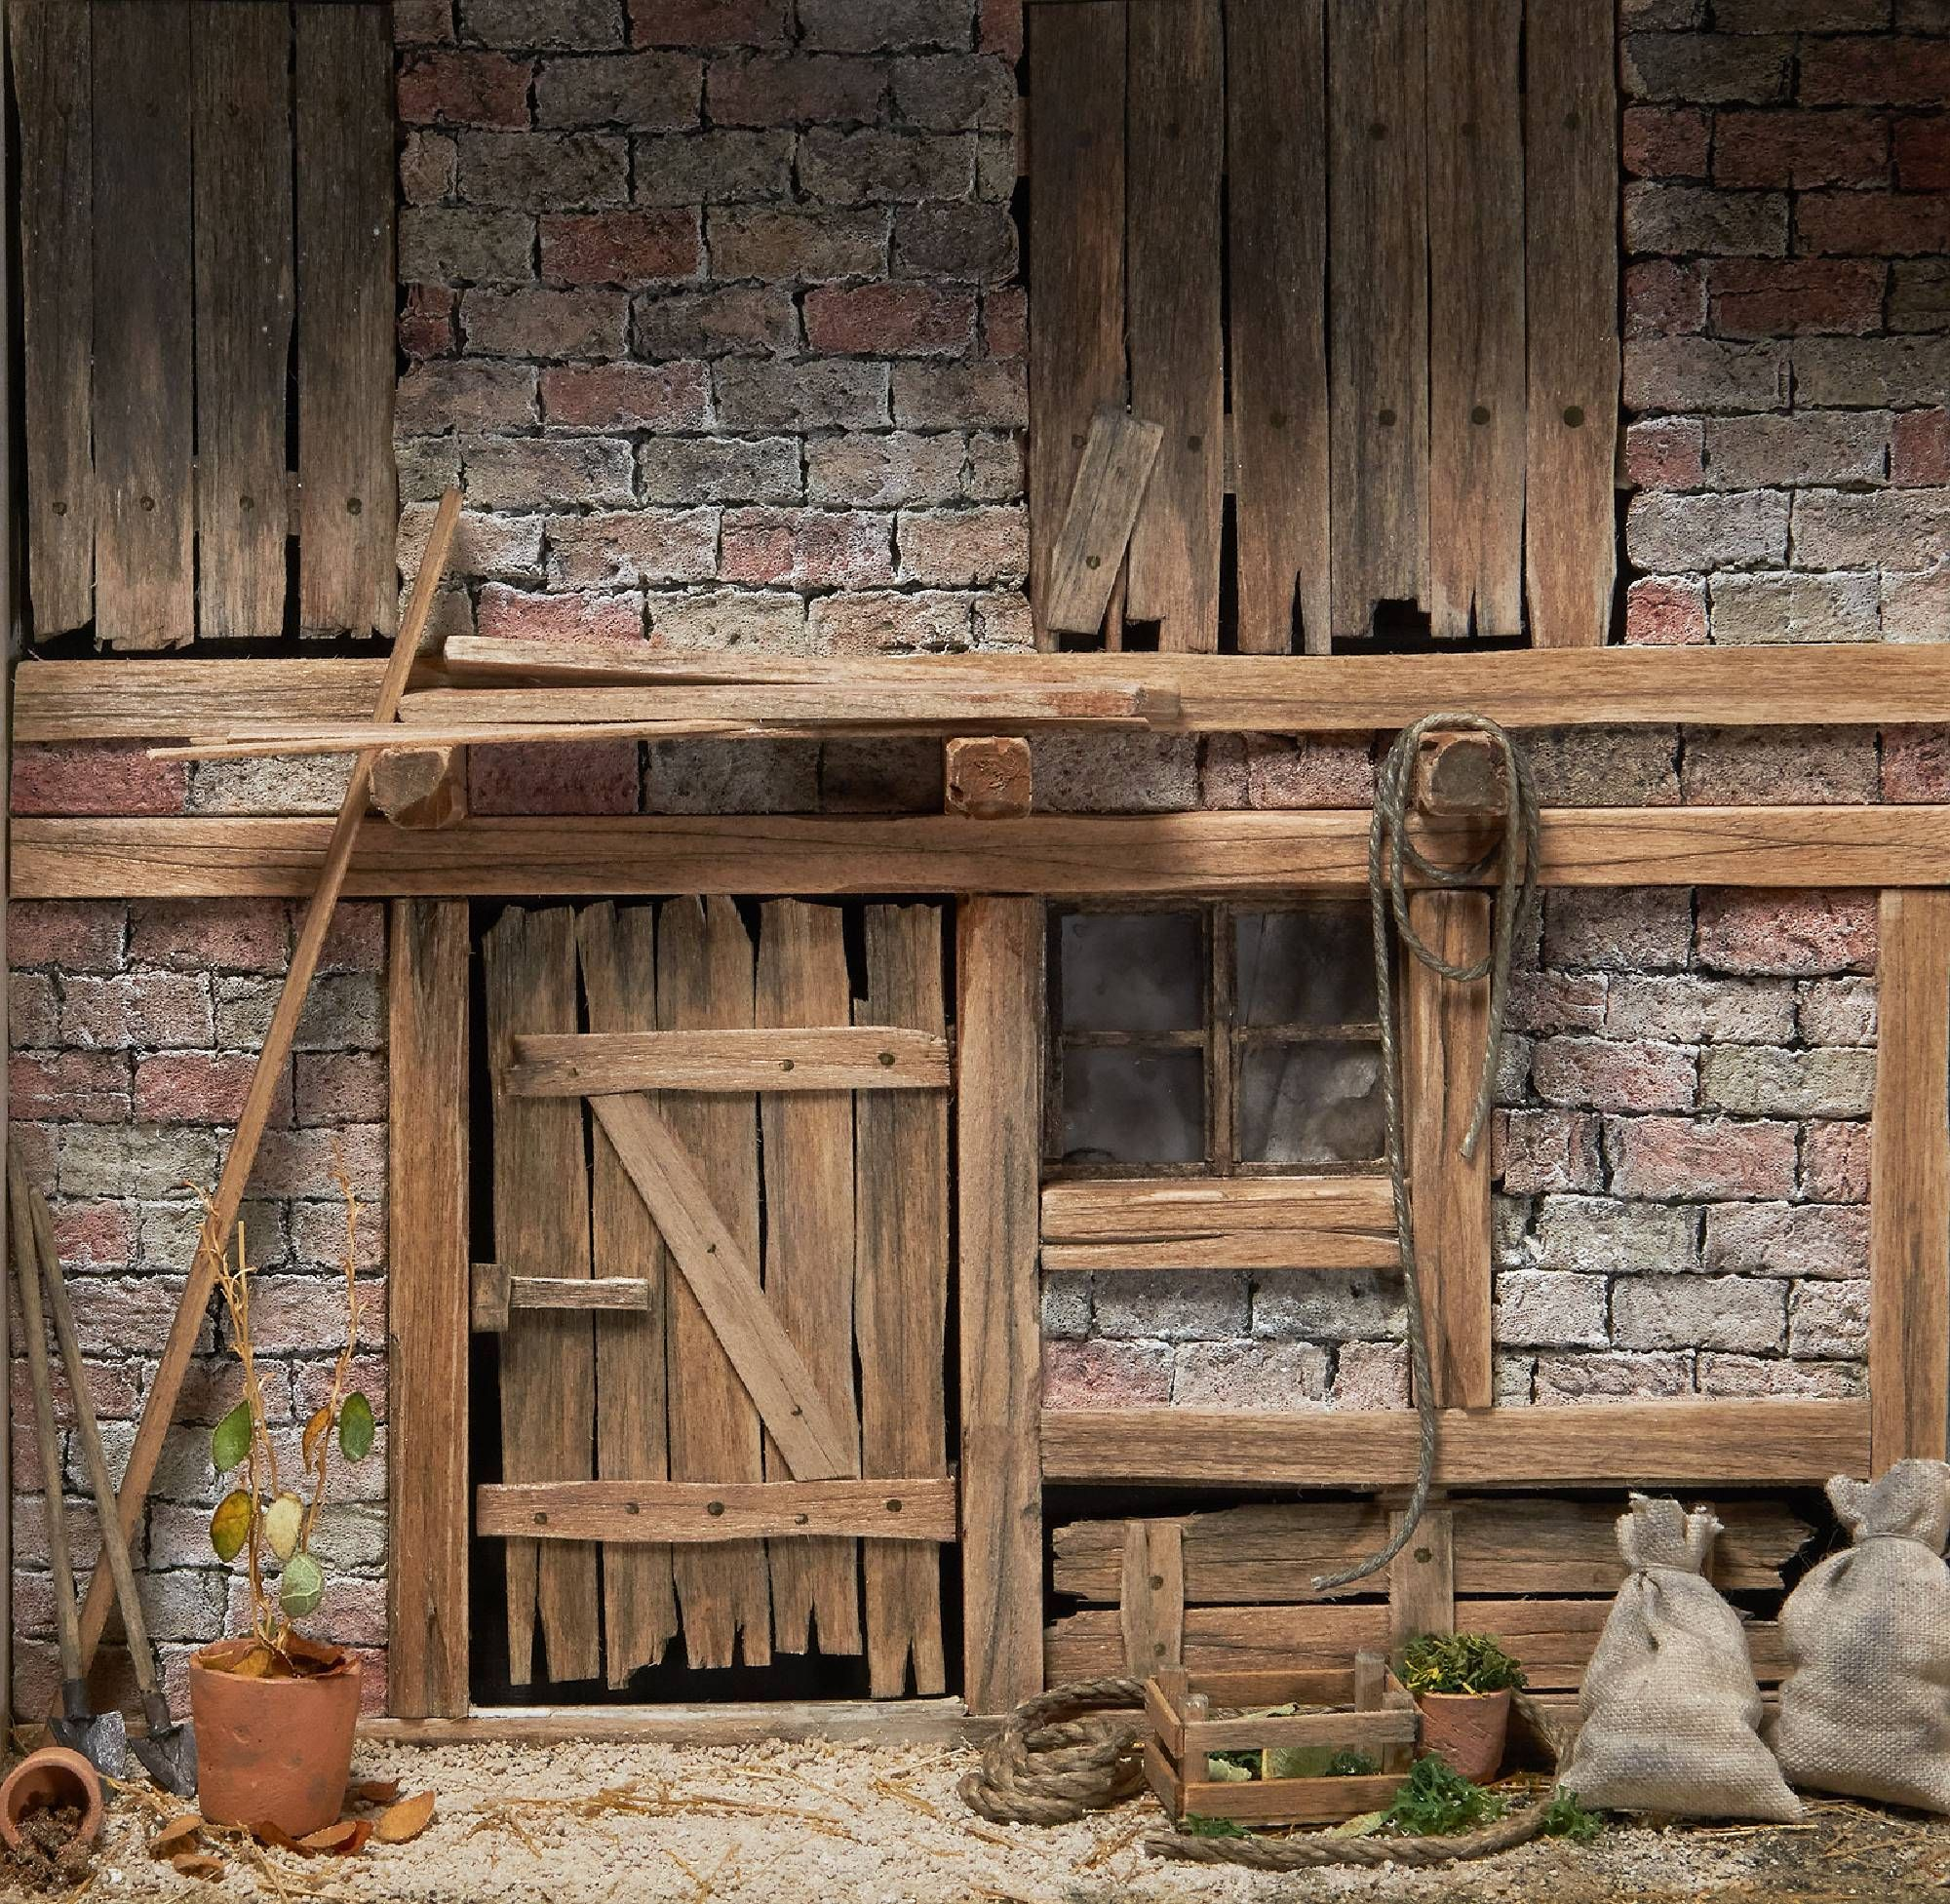 Building dioramas realistic and highly detailed wi